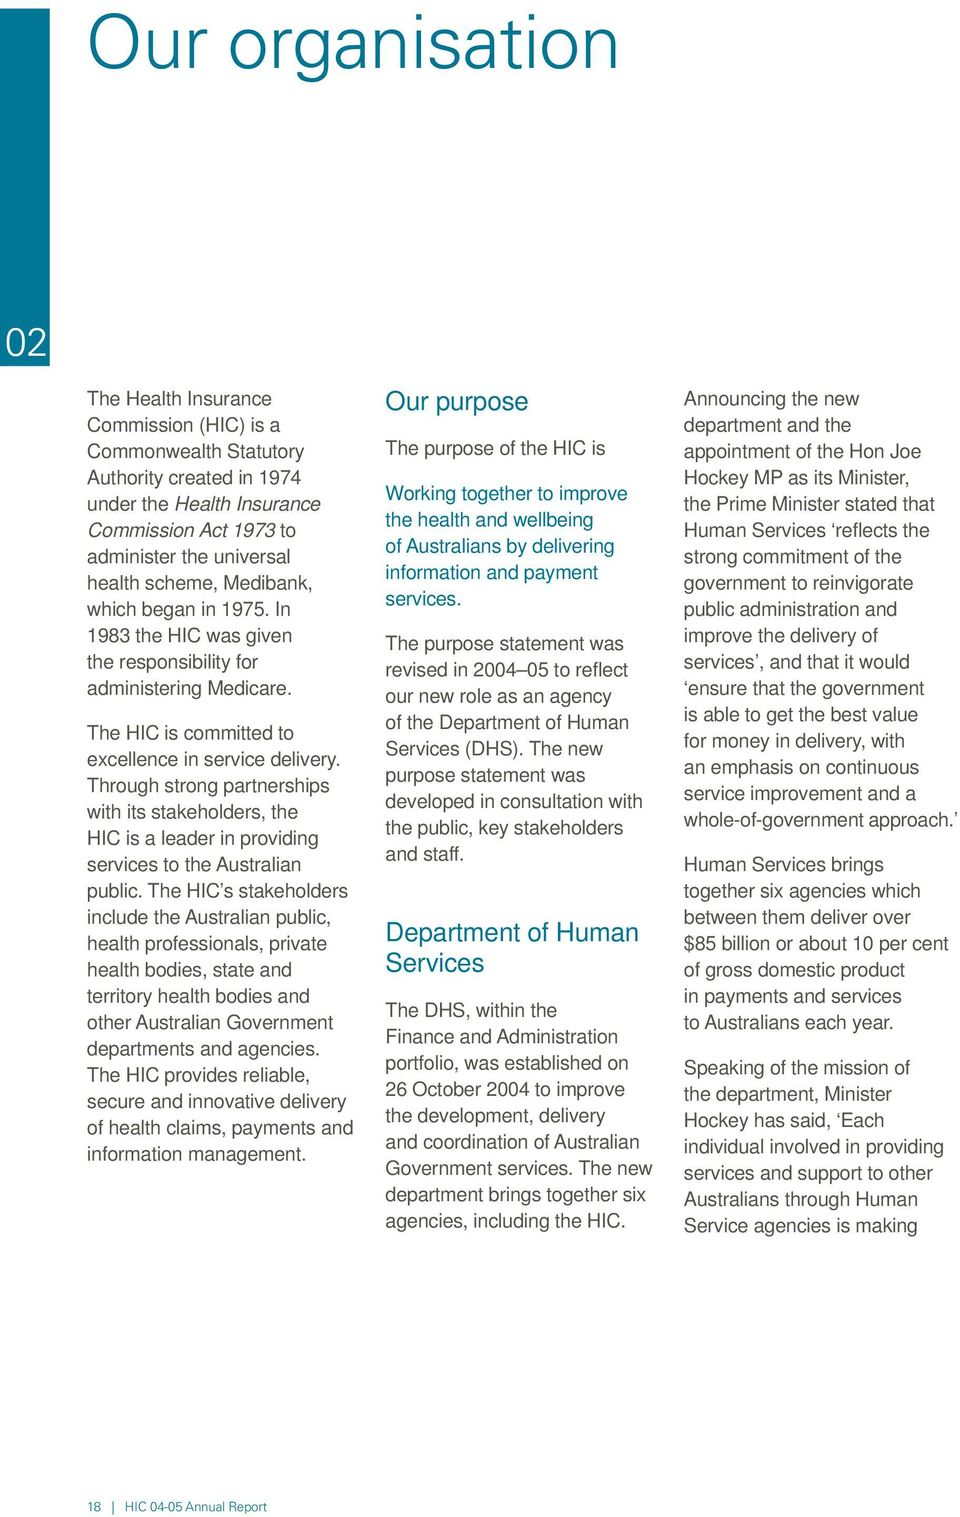 Through strong partnerships with its stakeholders, the HIC is a leader in providing services to the Australian public.